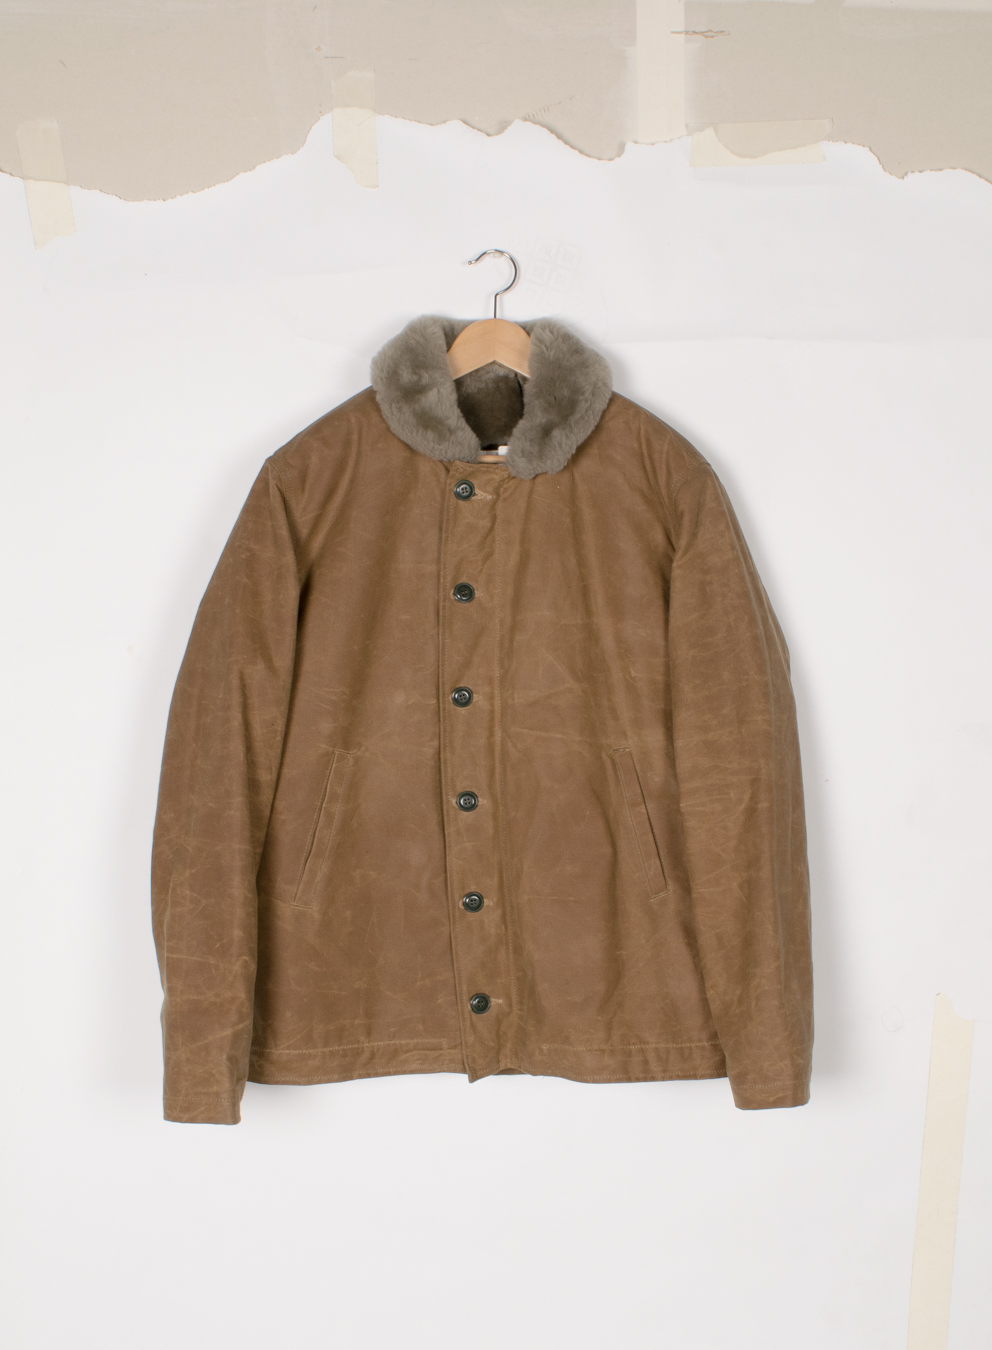 N-1 Deck Jacket - Field Tan/Grey - $595/$1250